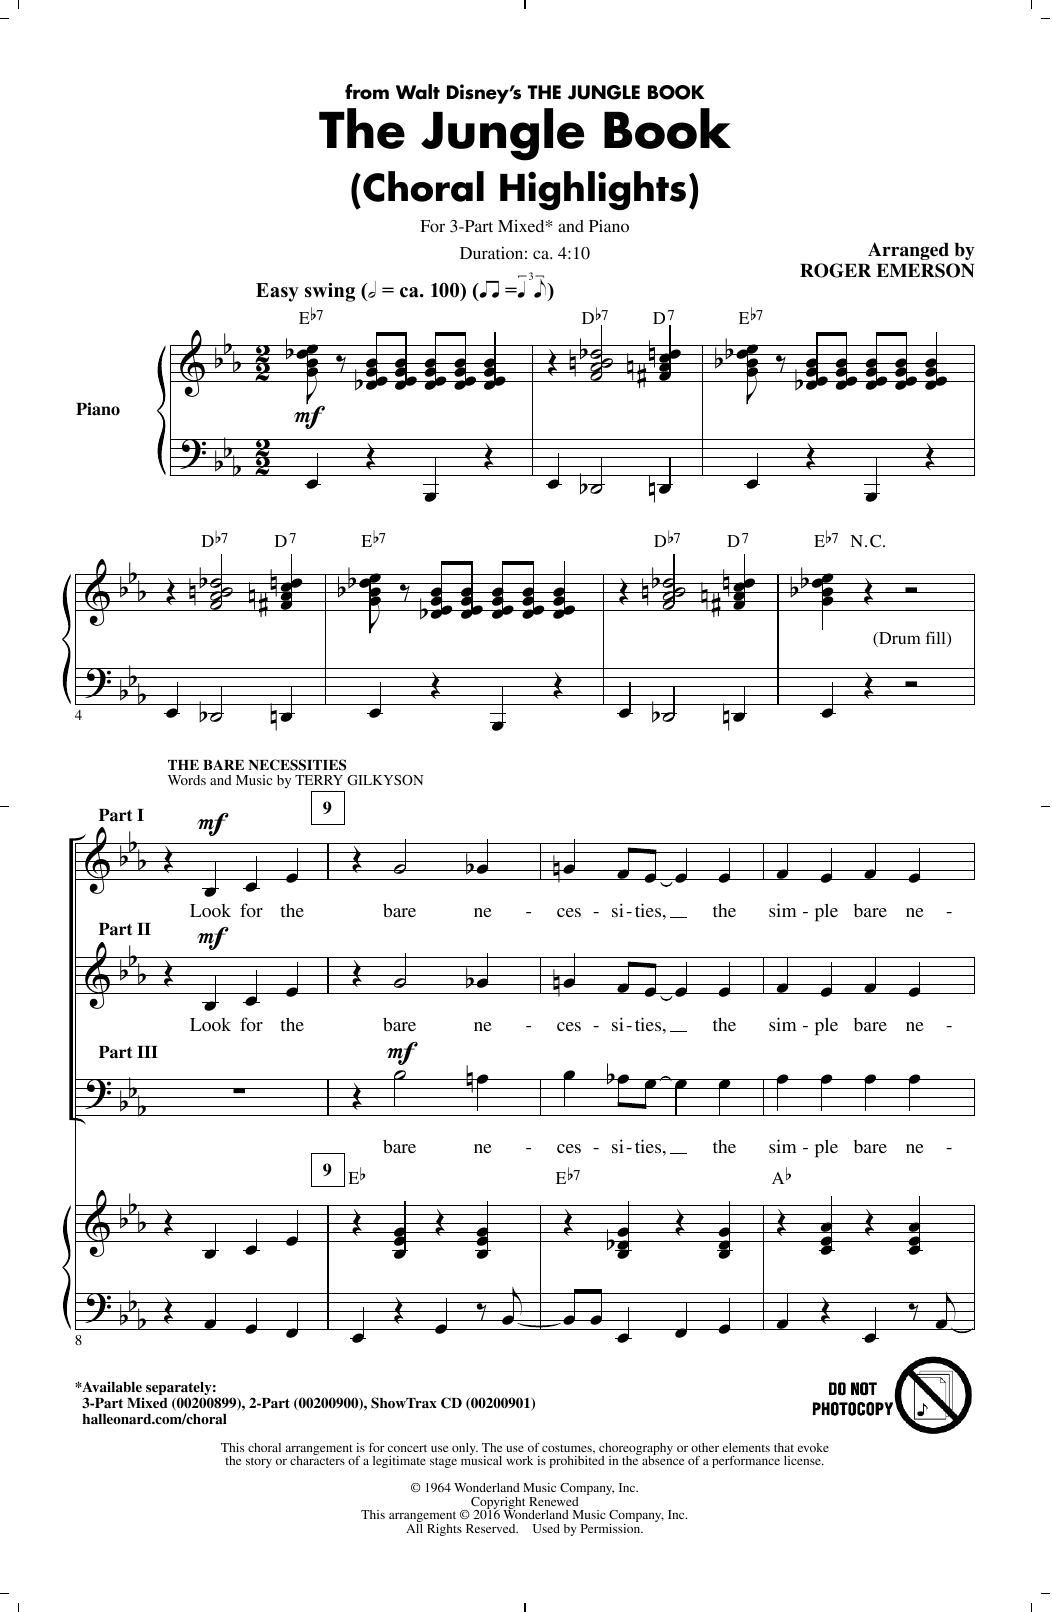 The Jungle Book (Choral Highlights) Sheet Music